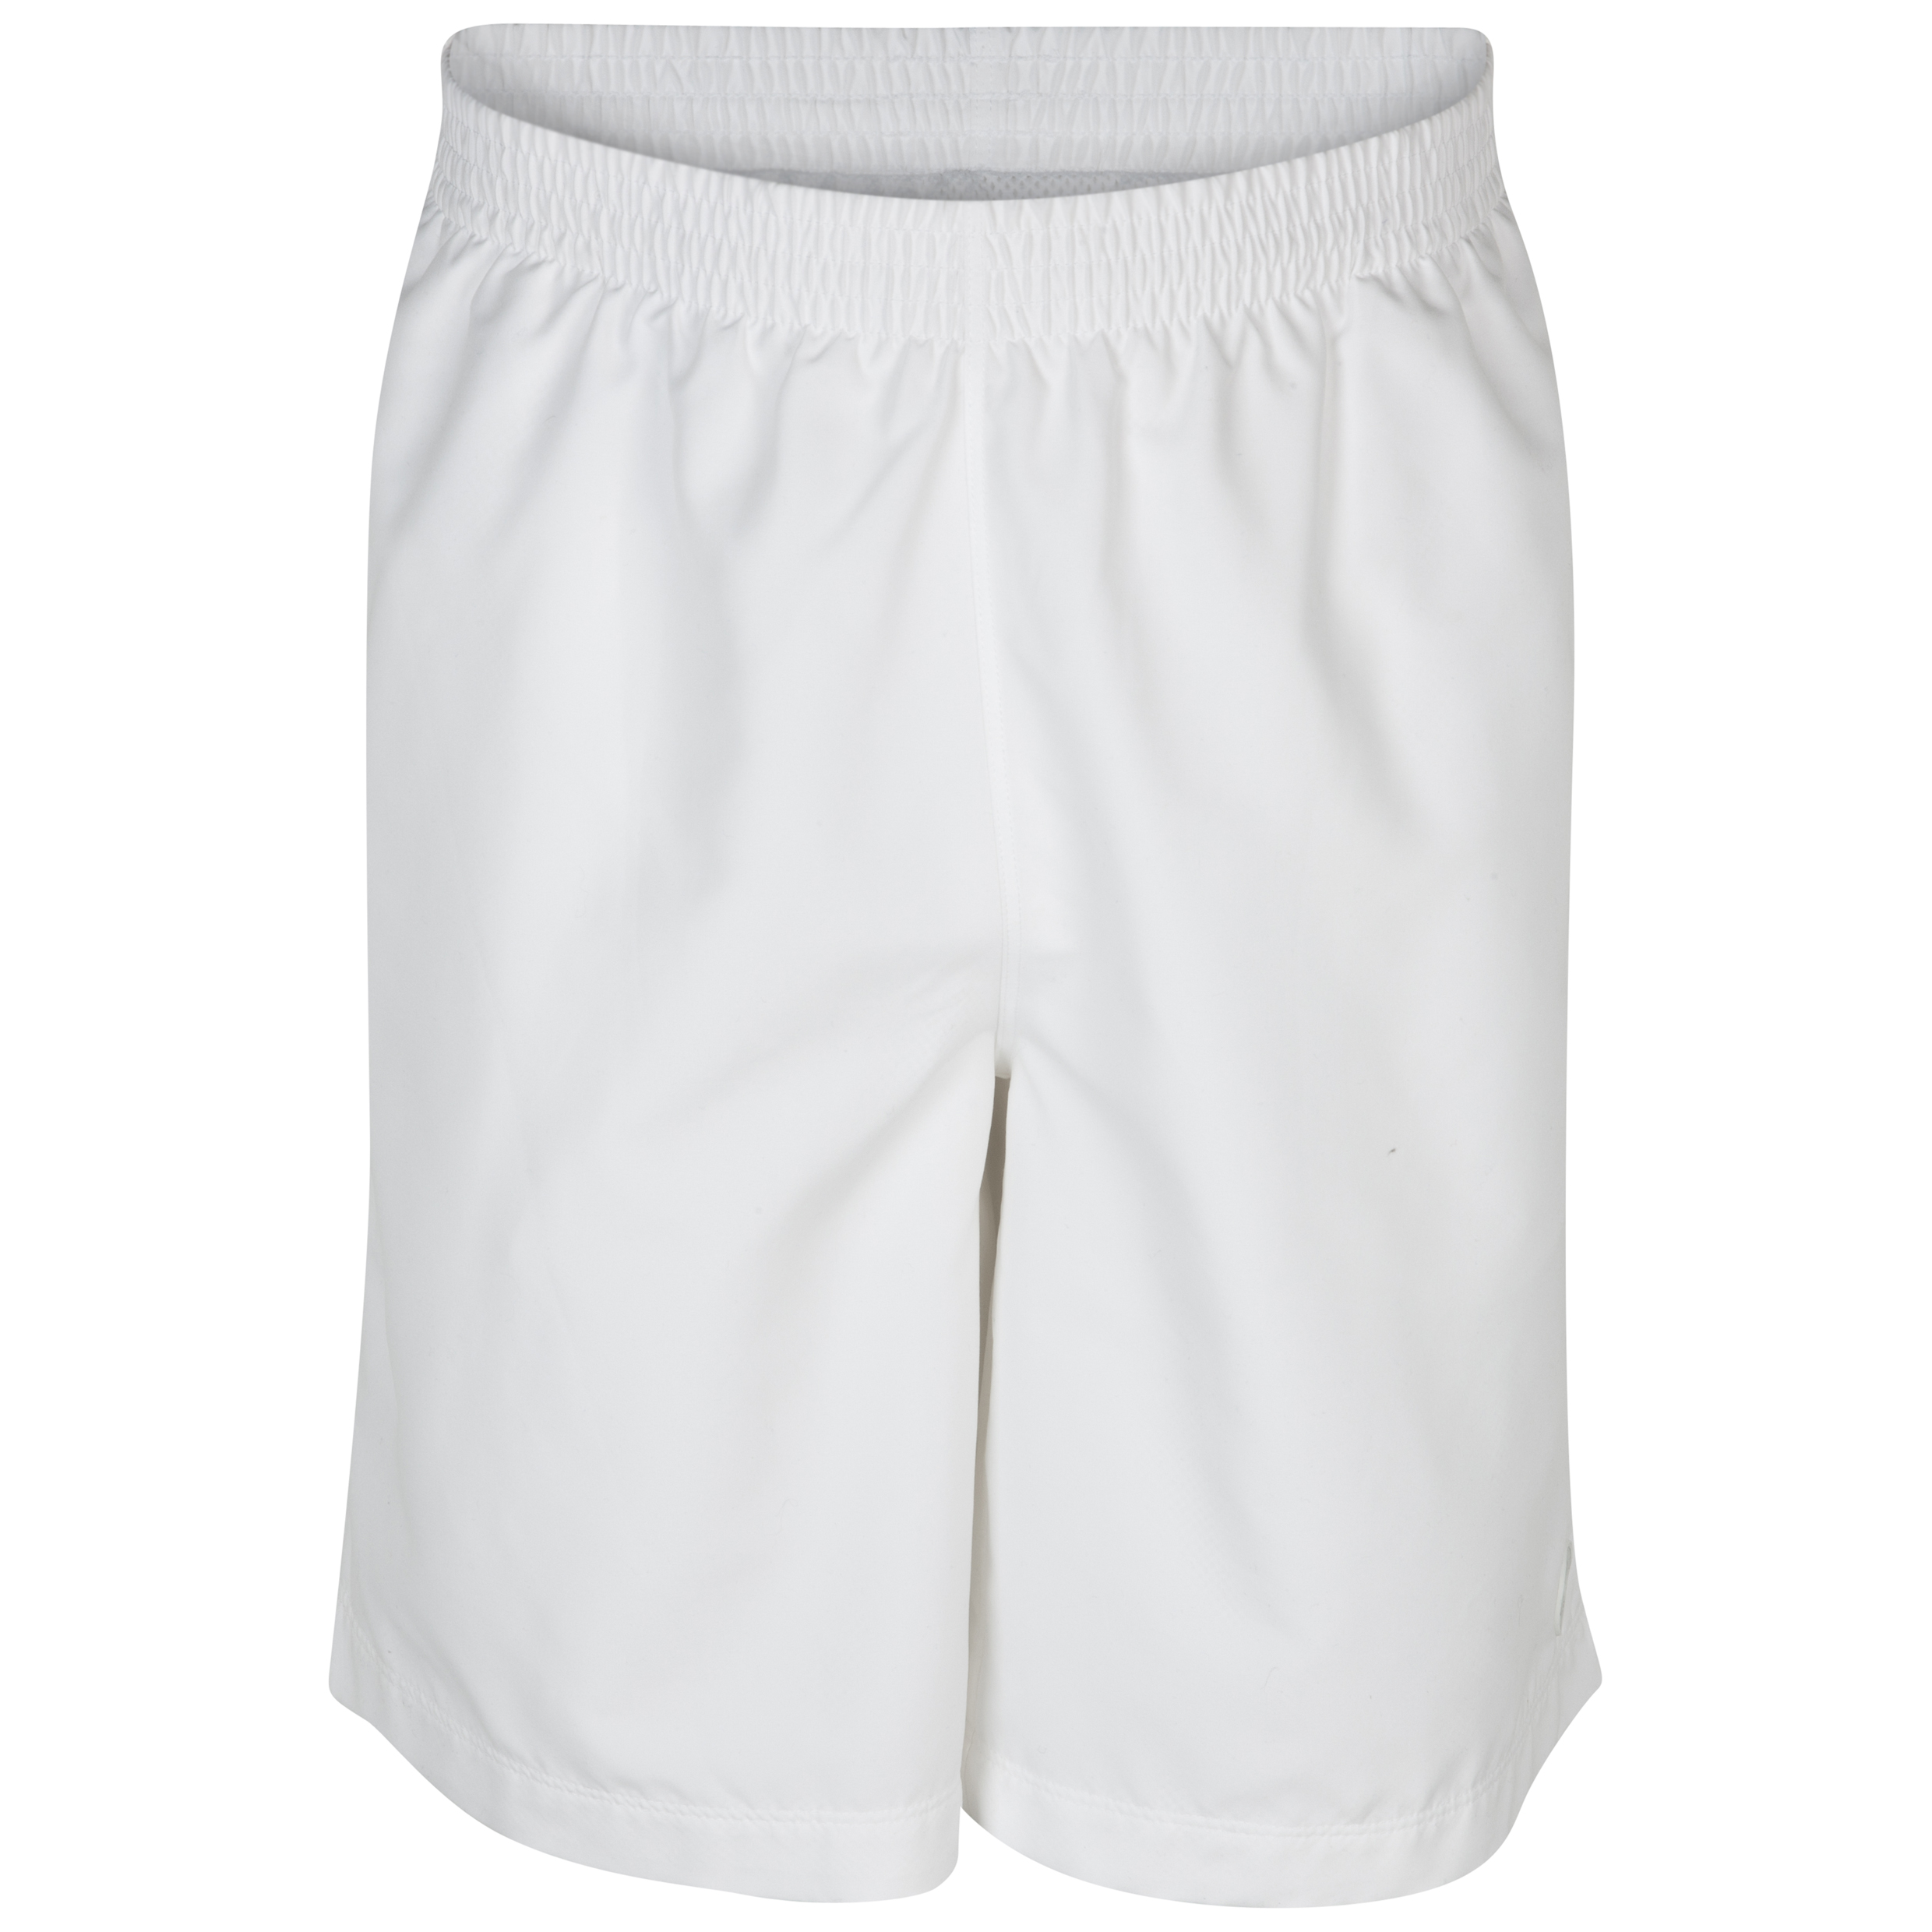 Wimbledon Player Shorts - White